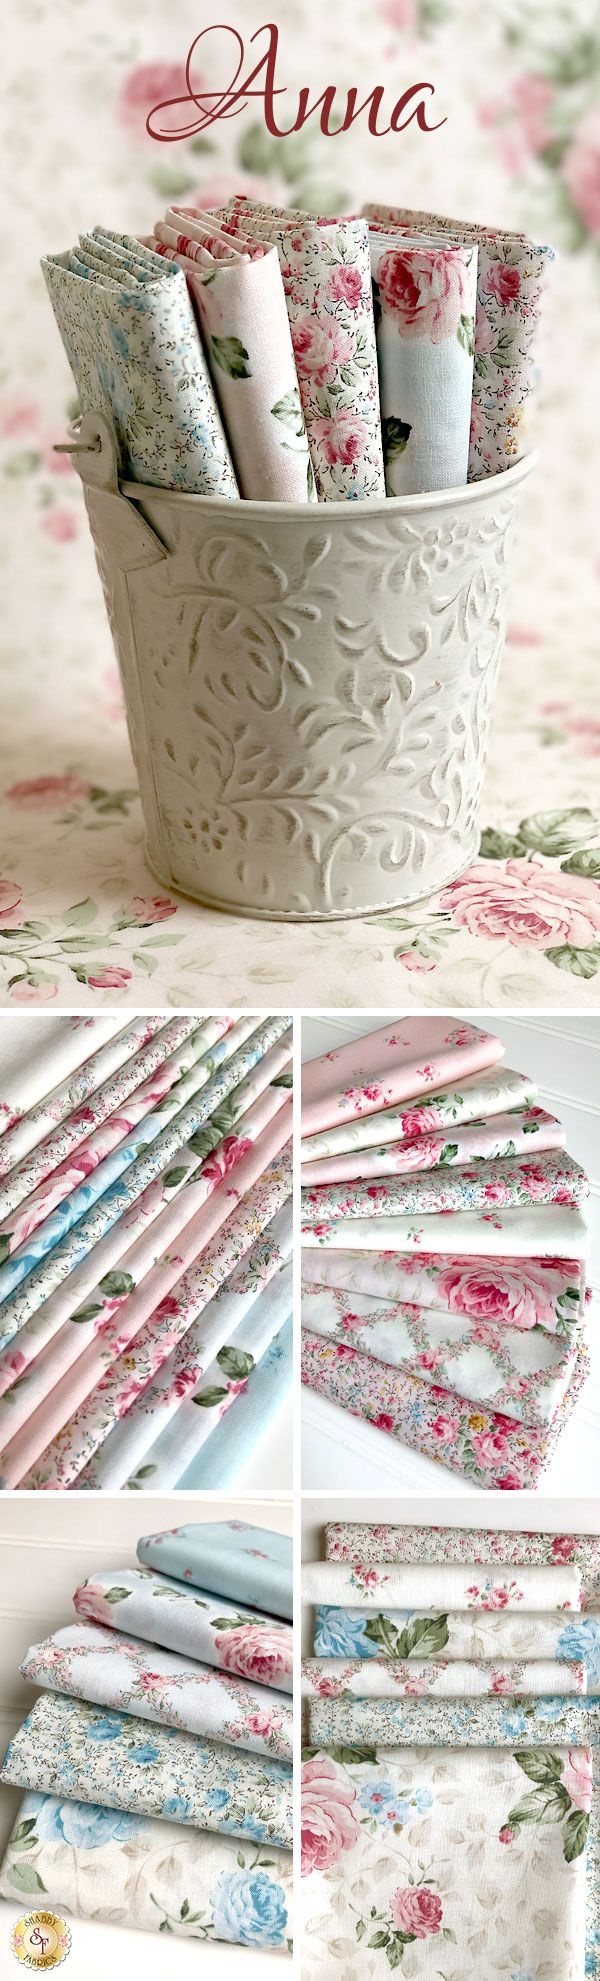 Anna by Robert Kaufman Fabrics is a beautiful floral fabric collection available at Shabby Fabrics!